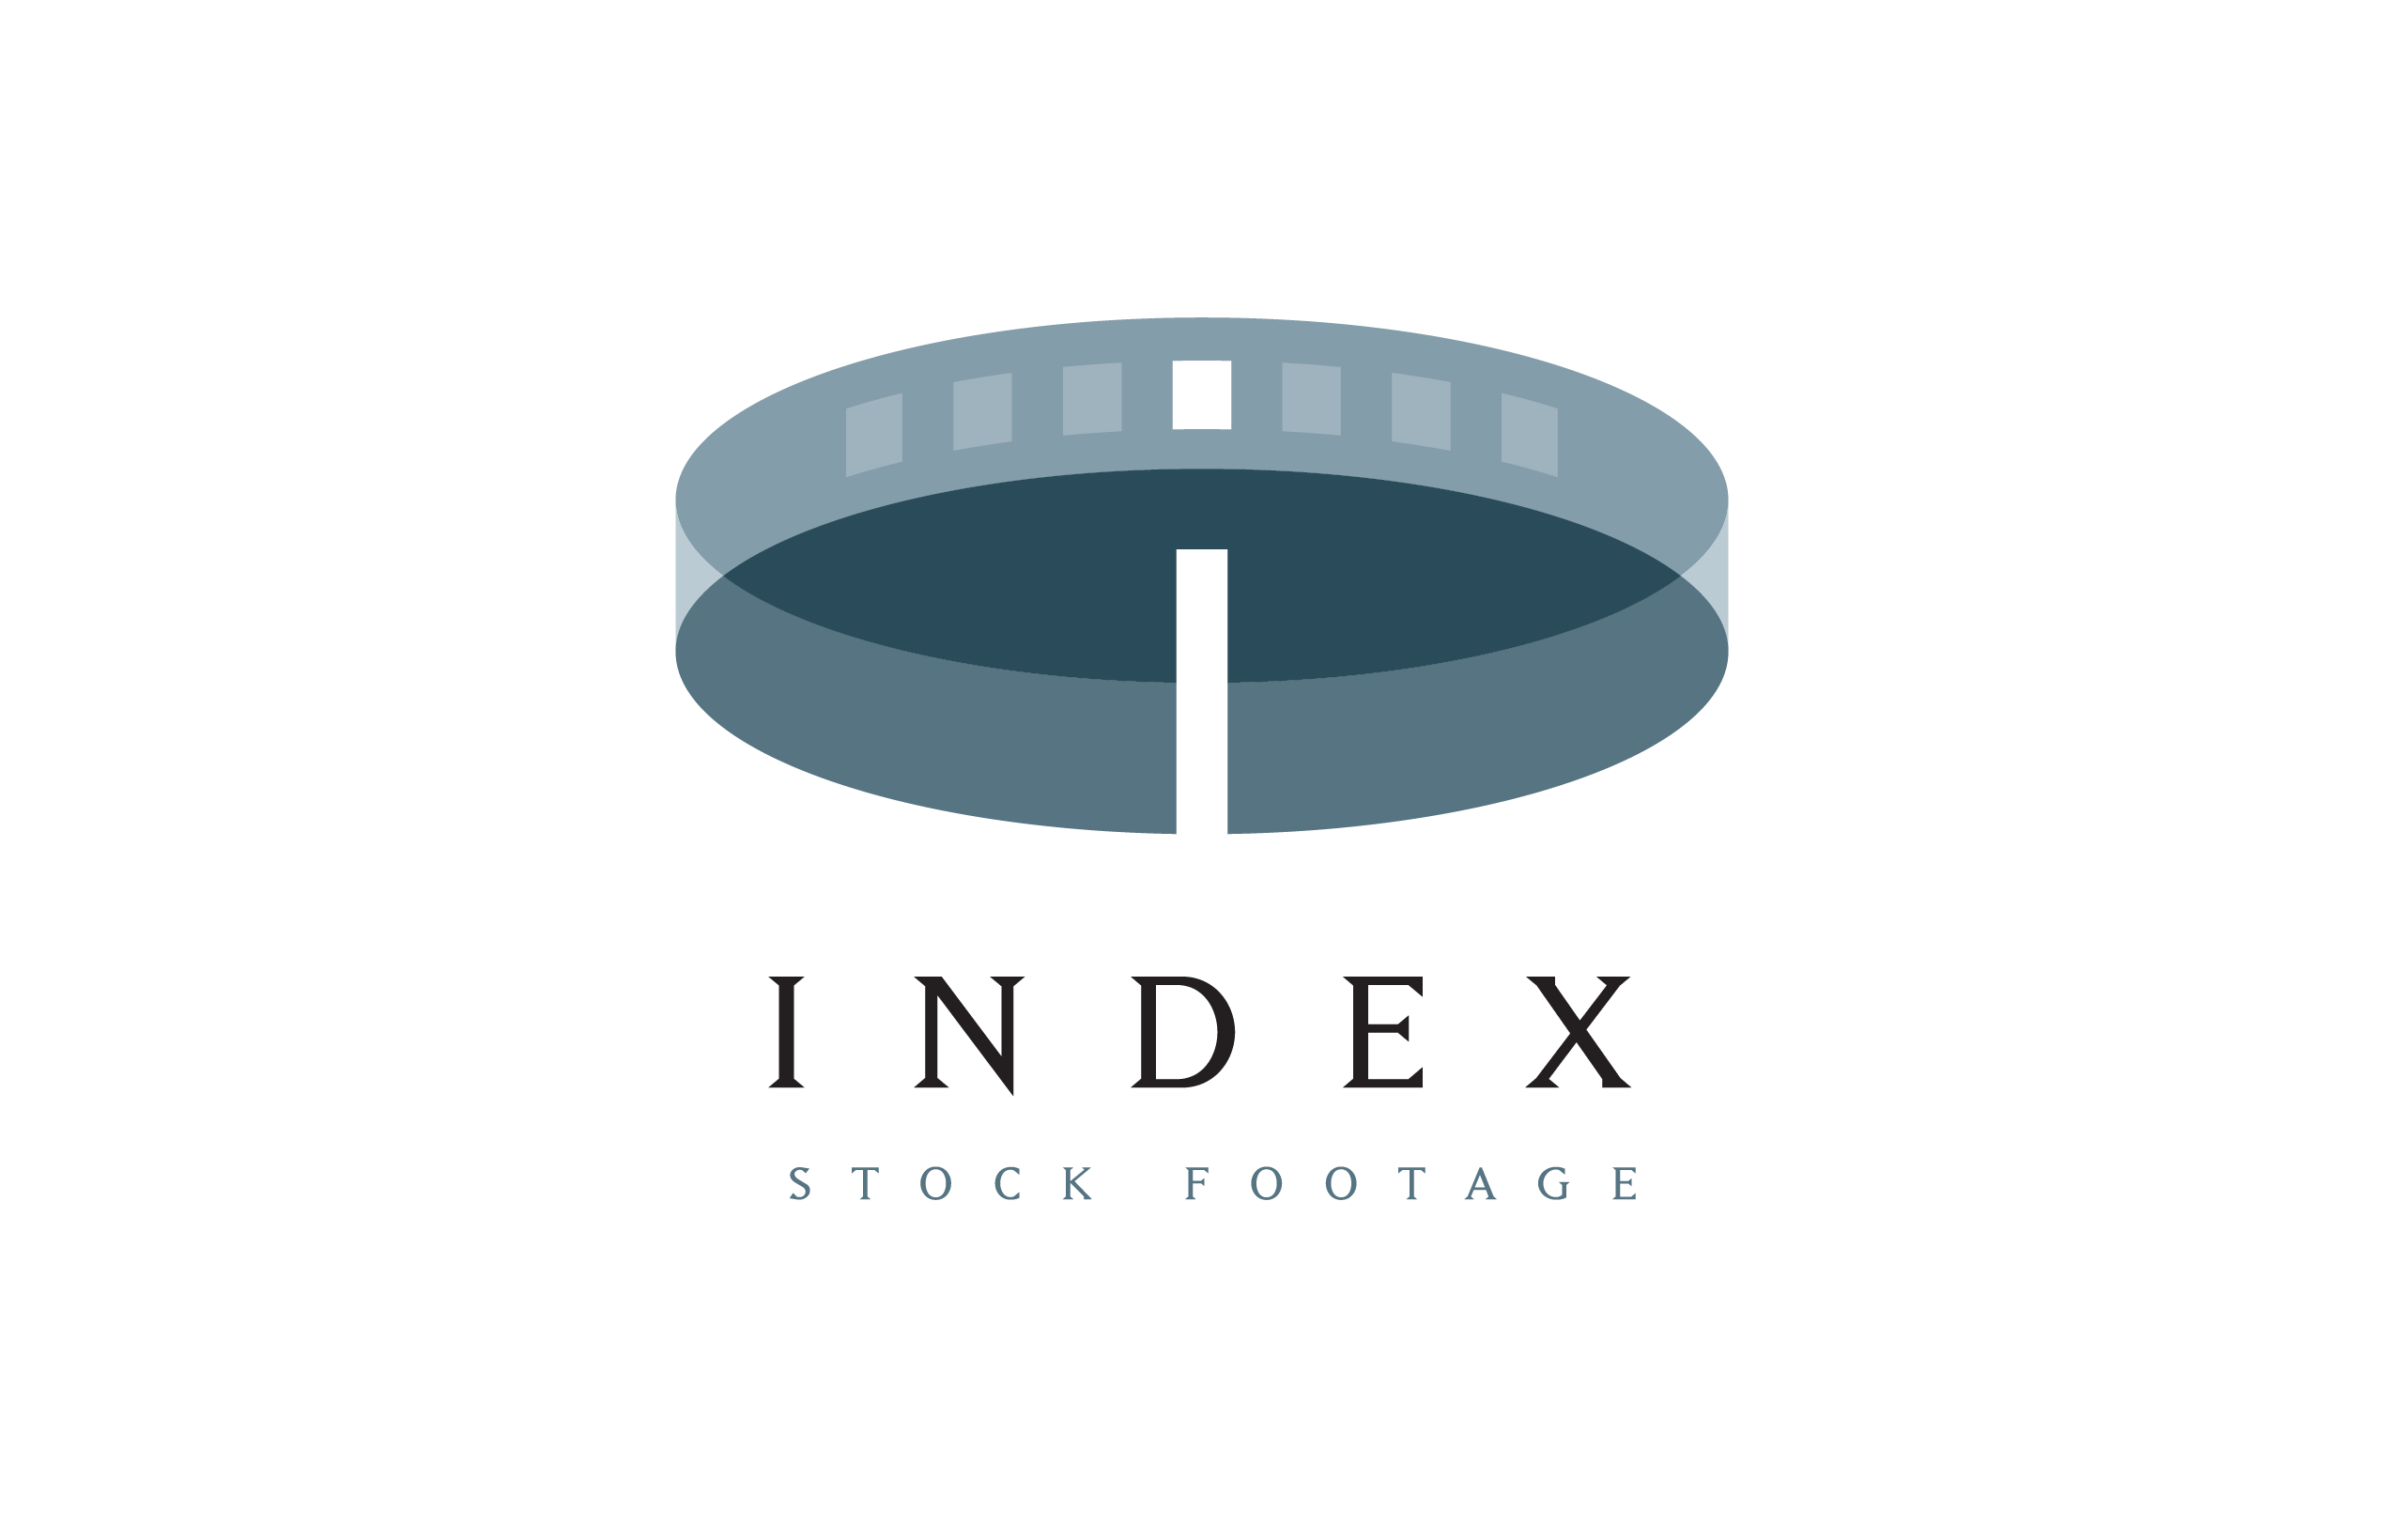 Logo for Index Stock Footage designed by Dan Forster